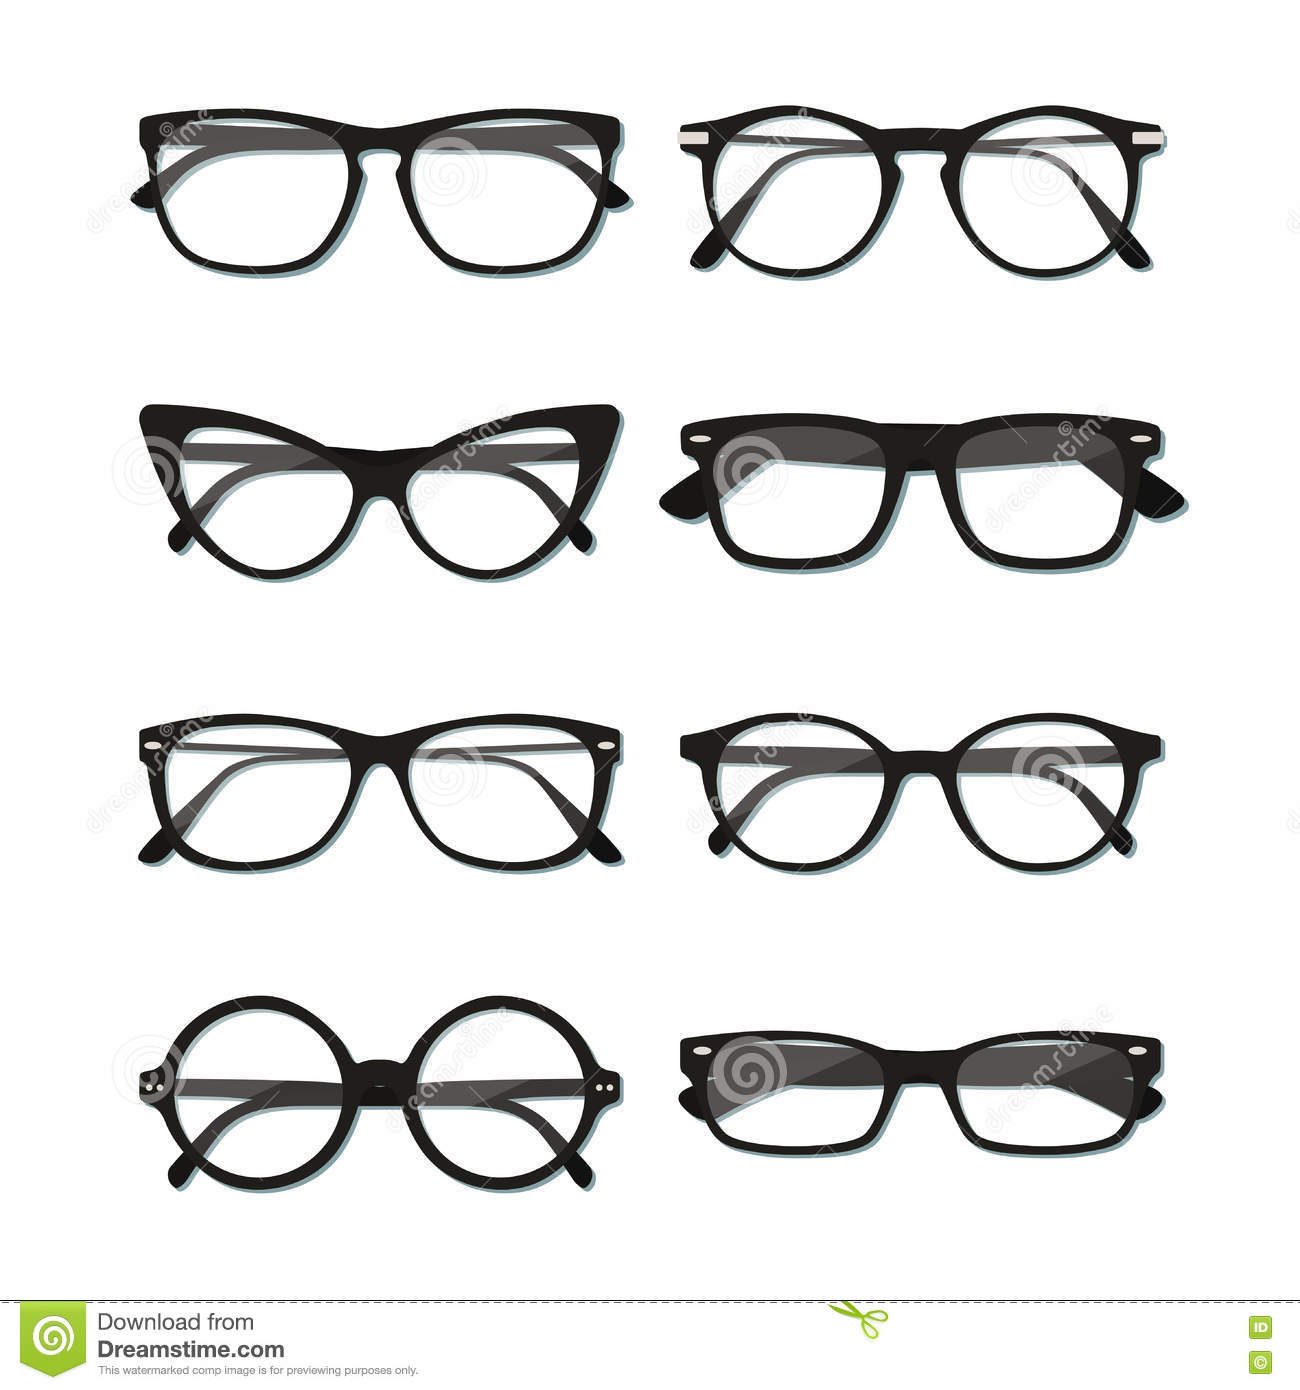 1d6b3518e7d Flat vector glasses big set illustration. Collection of different of rim  glasses types - round